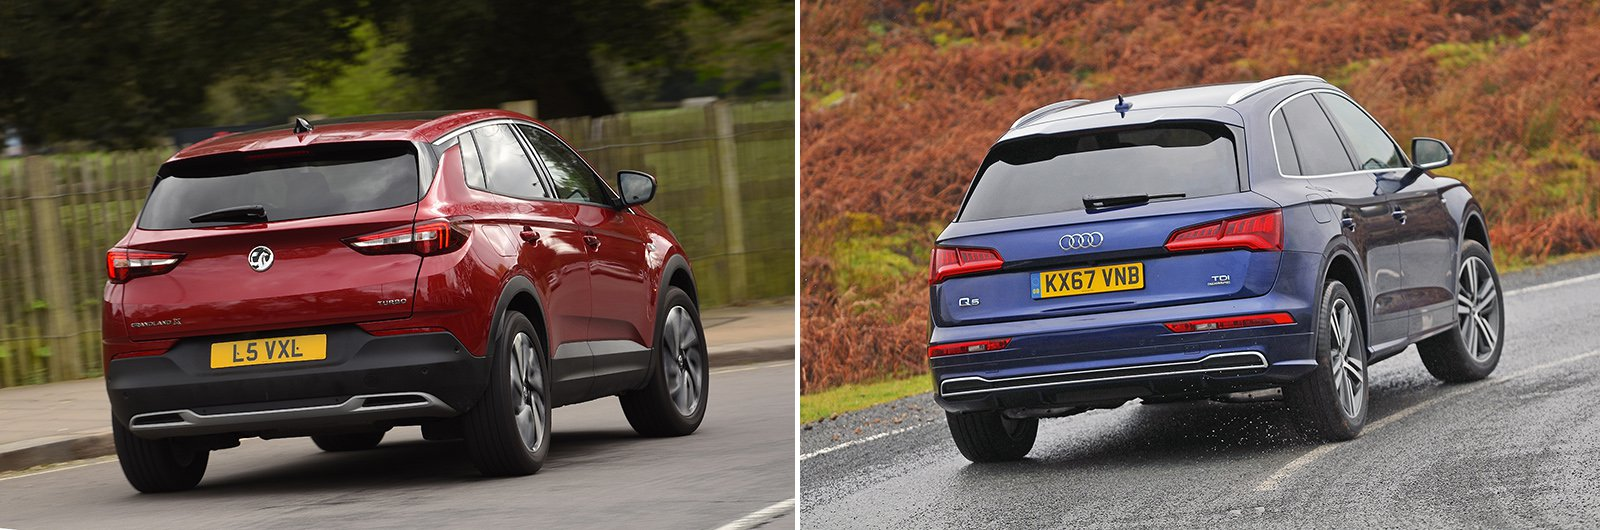 New Vauxhall Grandland X vs used Audi Q5: which is best?